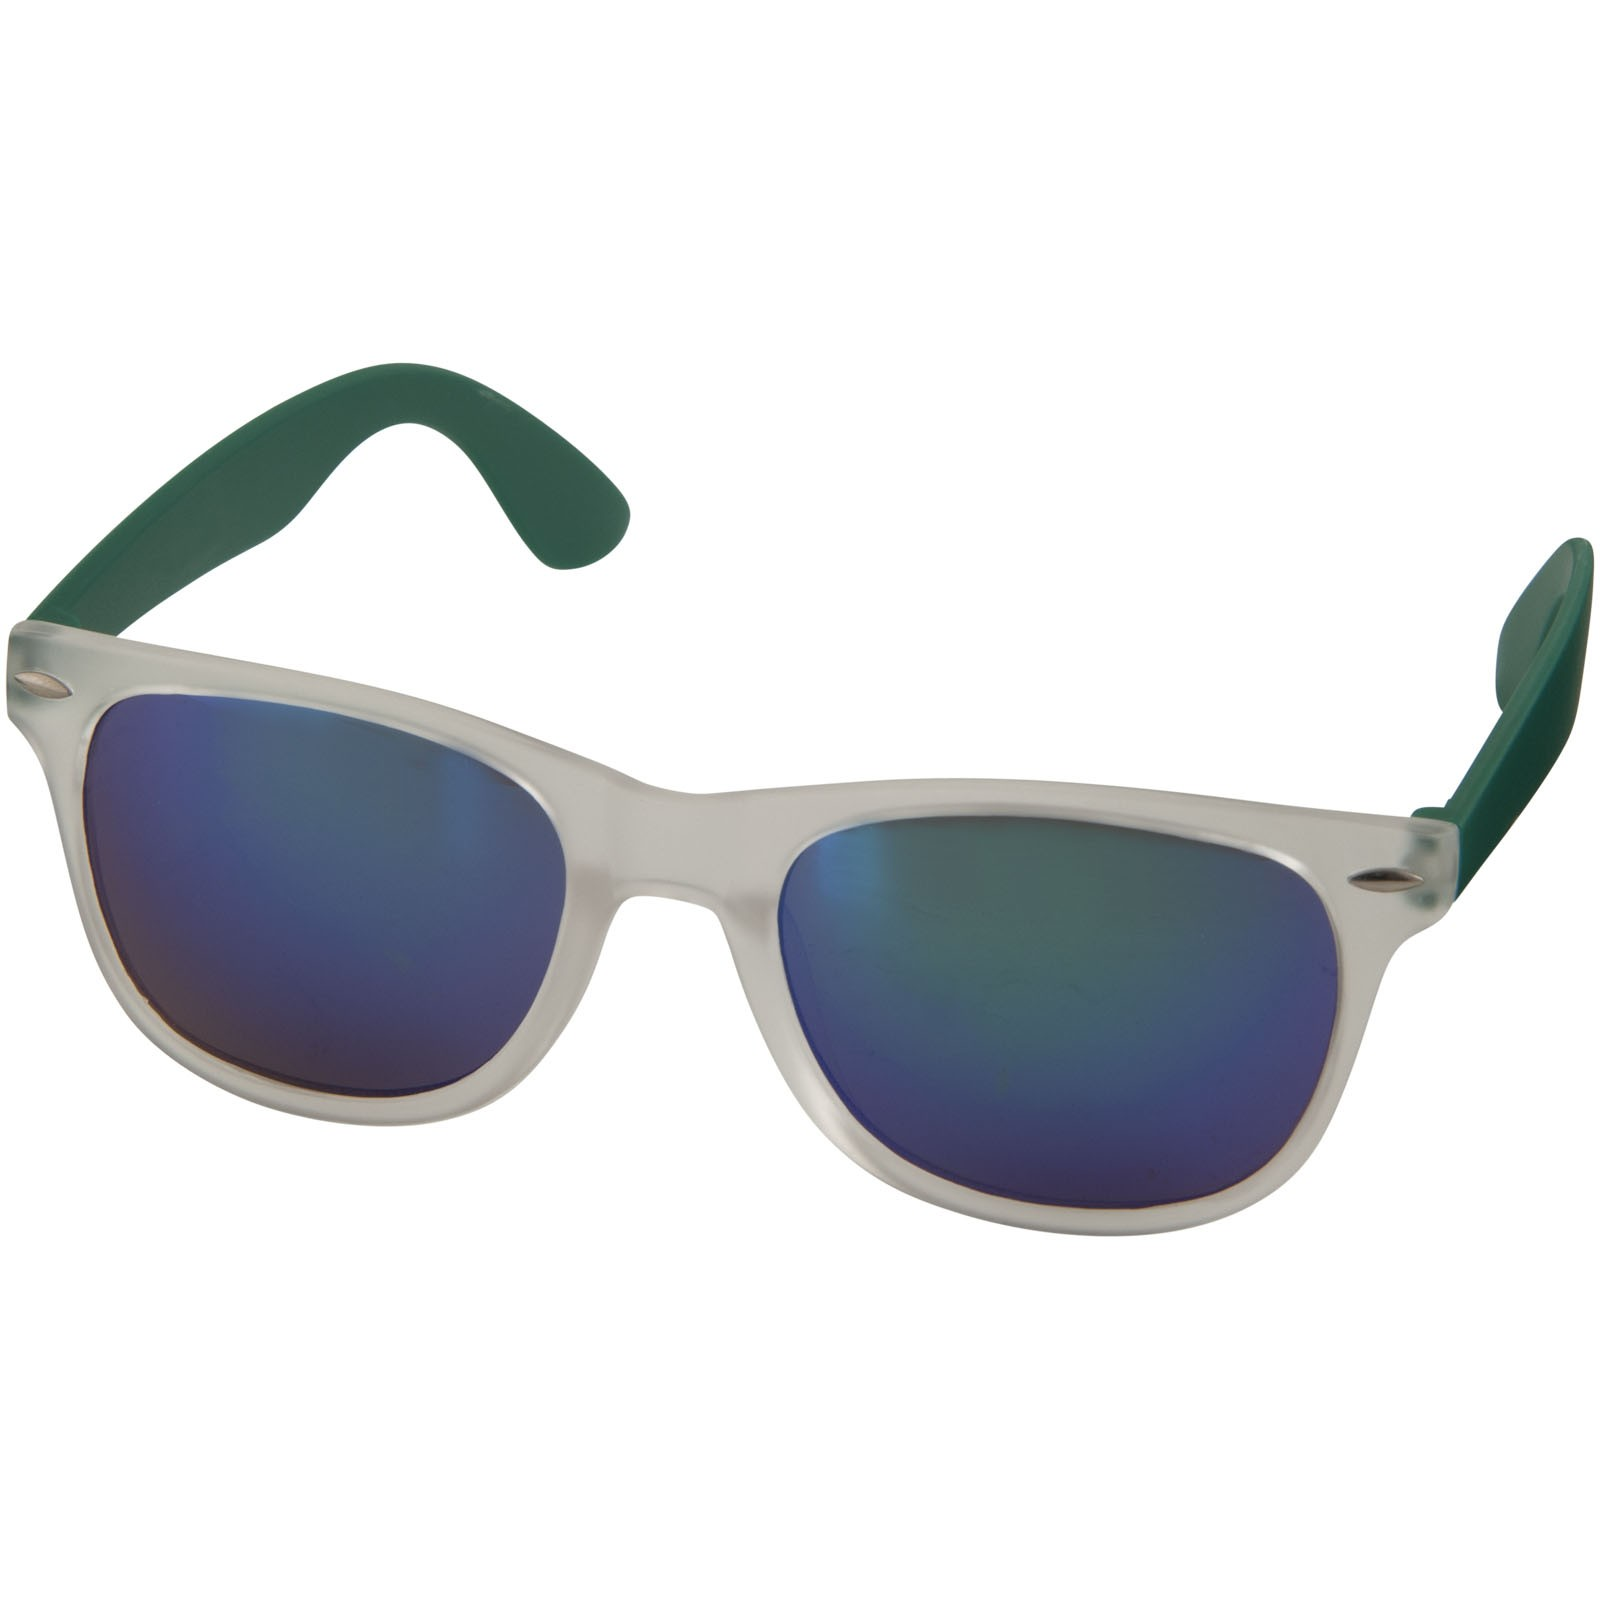 Sun Ray sunglasses with mirrored lenses - Green